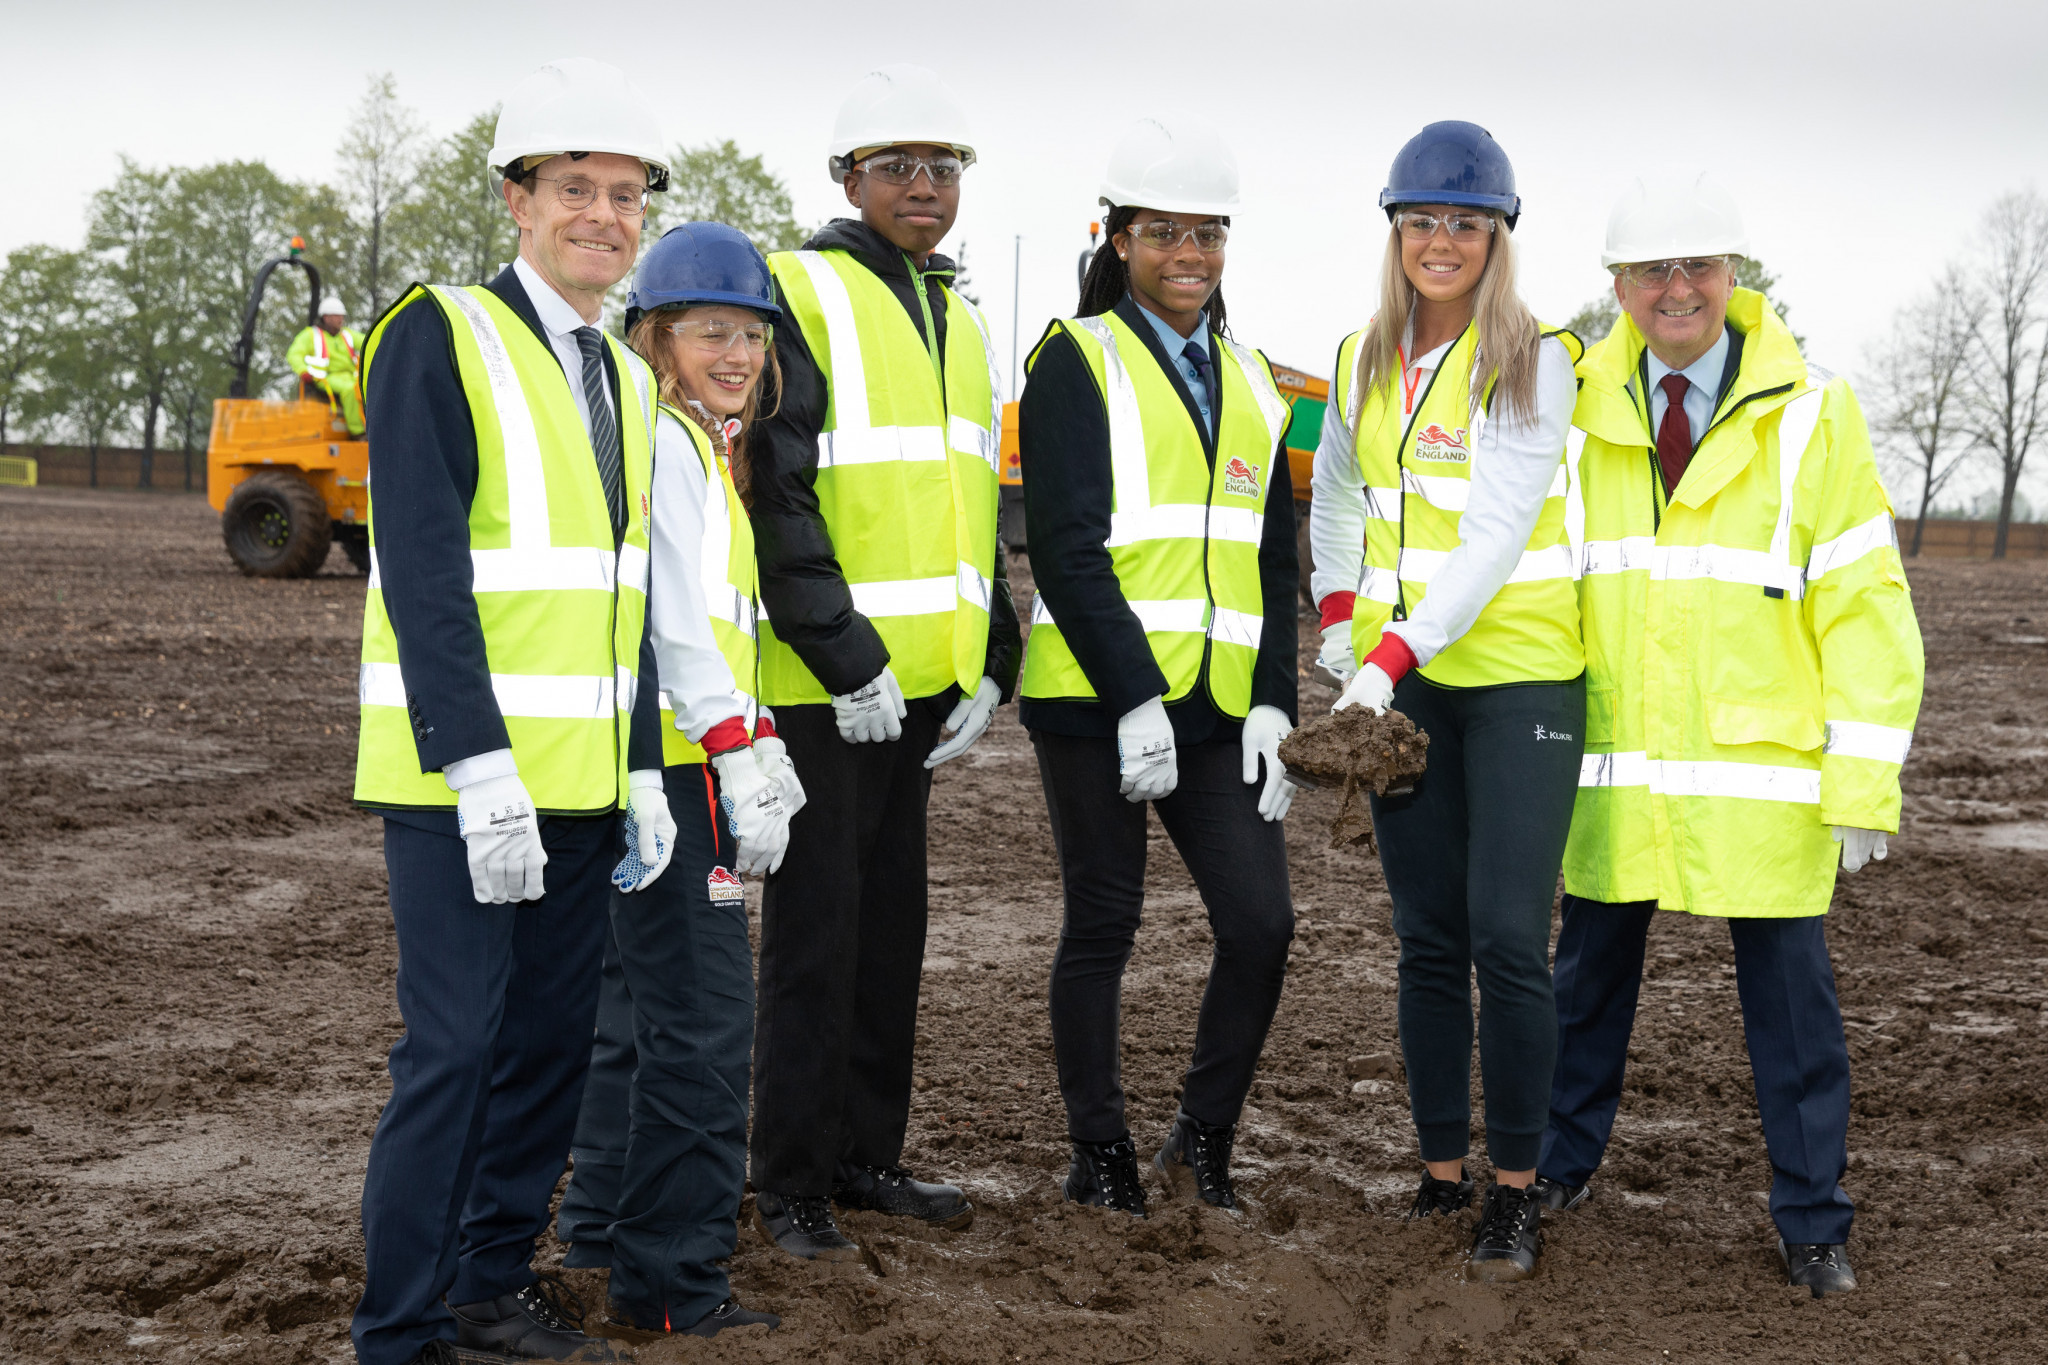 The Birmingham 2022 ground-breaking ceremony was attended by Birmingham City Council Leader Ian Ward, Mayor of the West Midlands Andy Street, Team England athletes Katrina Hart and Katie Stainton and local schoolchildren ©Birmingham 2022